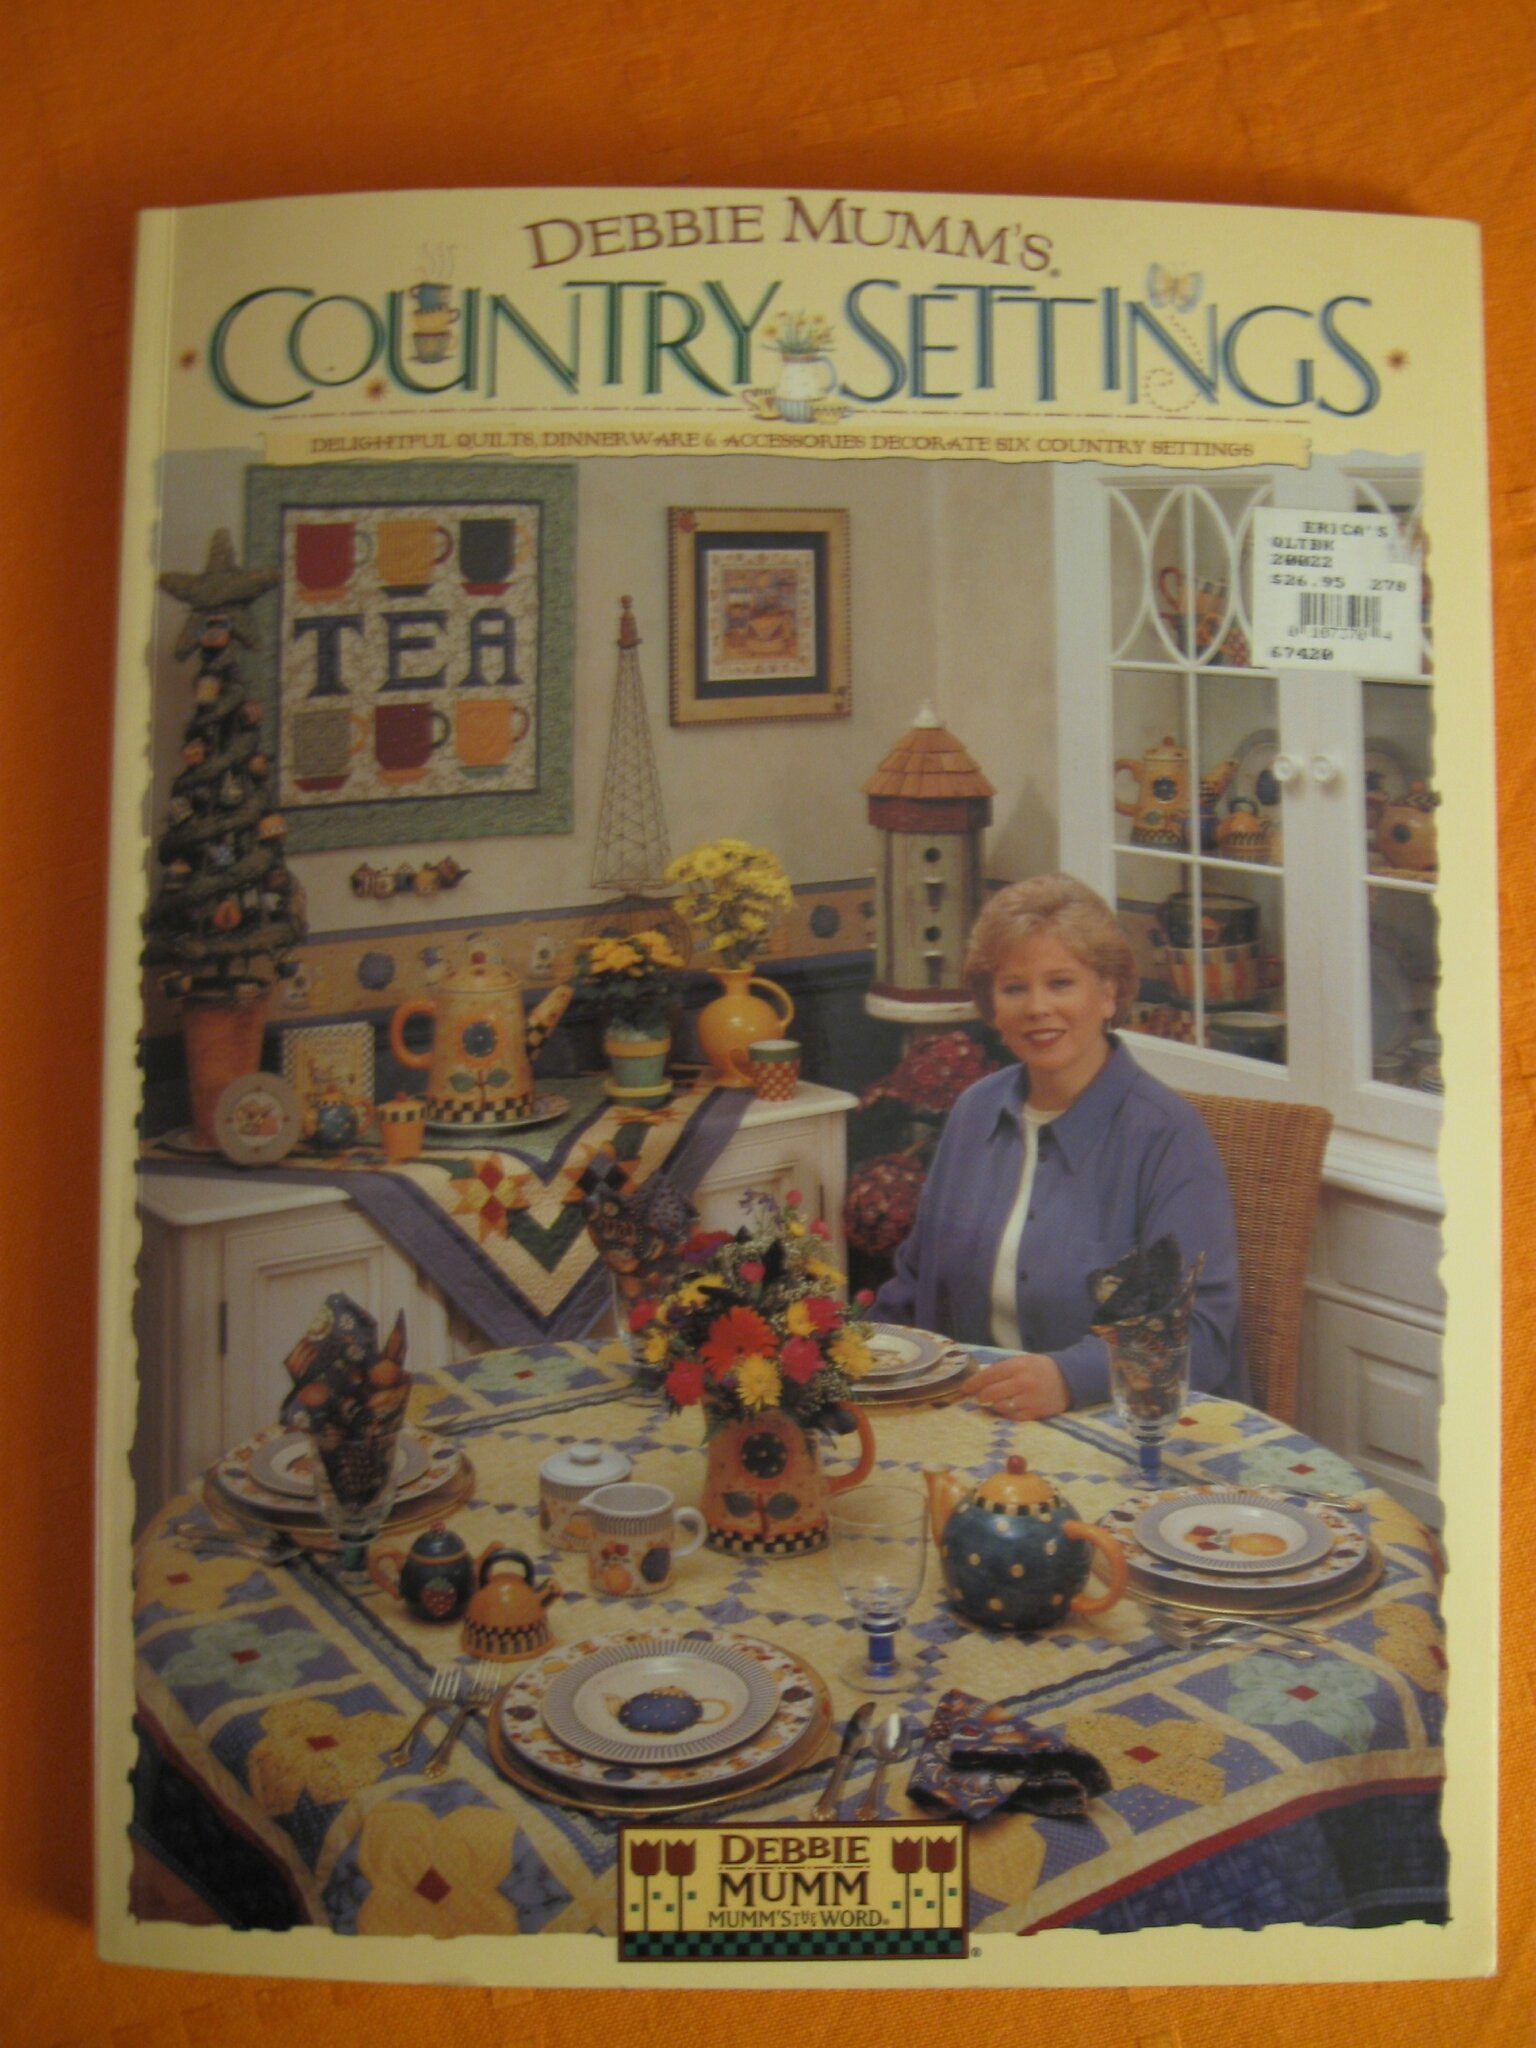 DEBBIE MUMM-COUNTRY SETTINGS